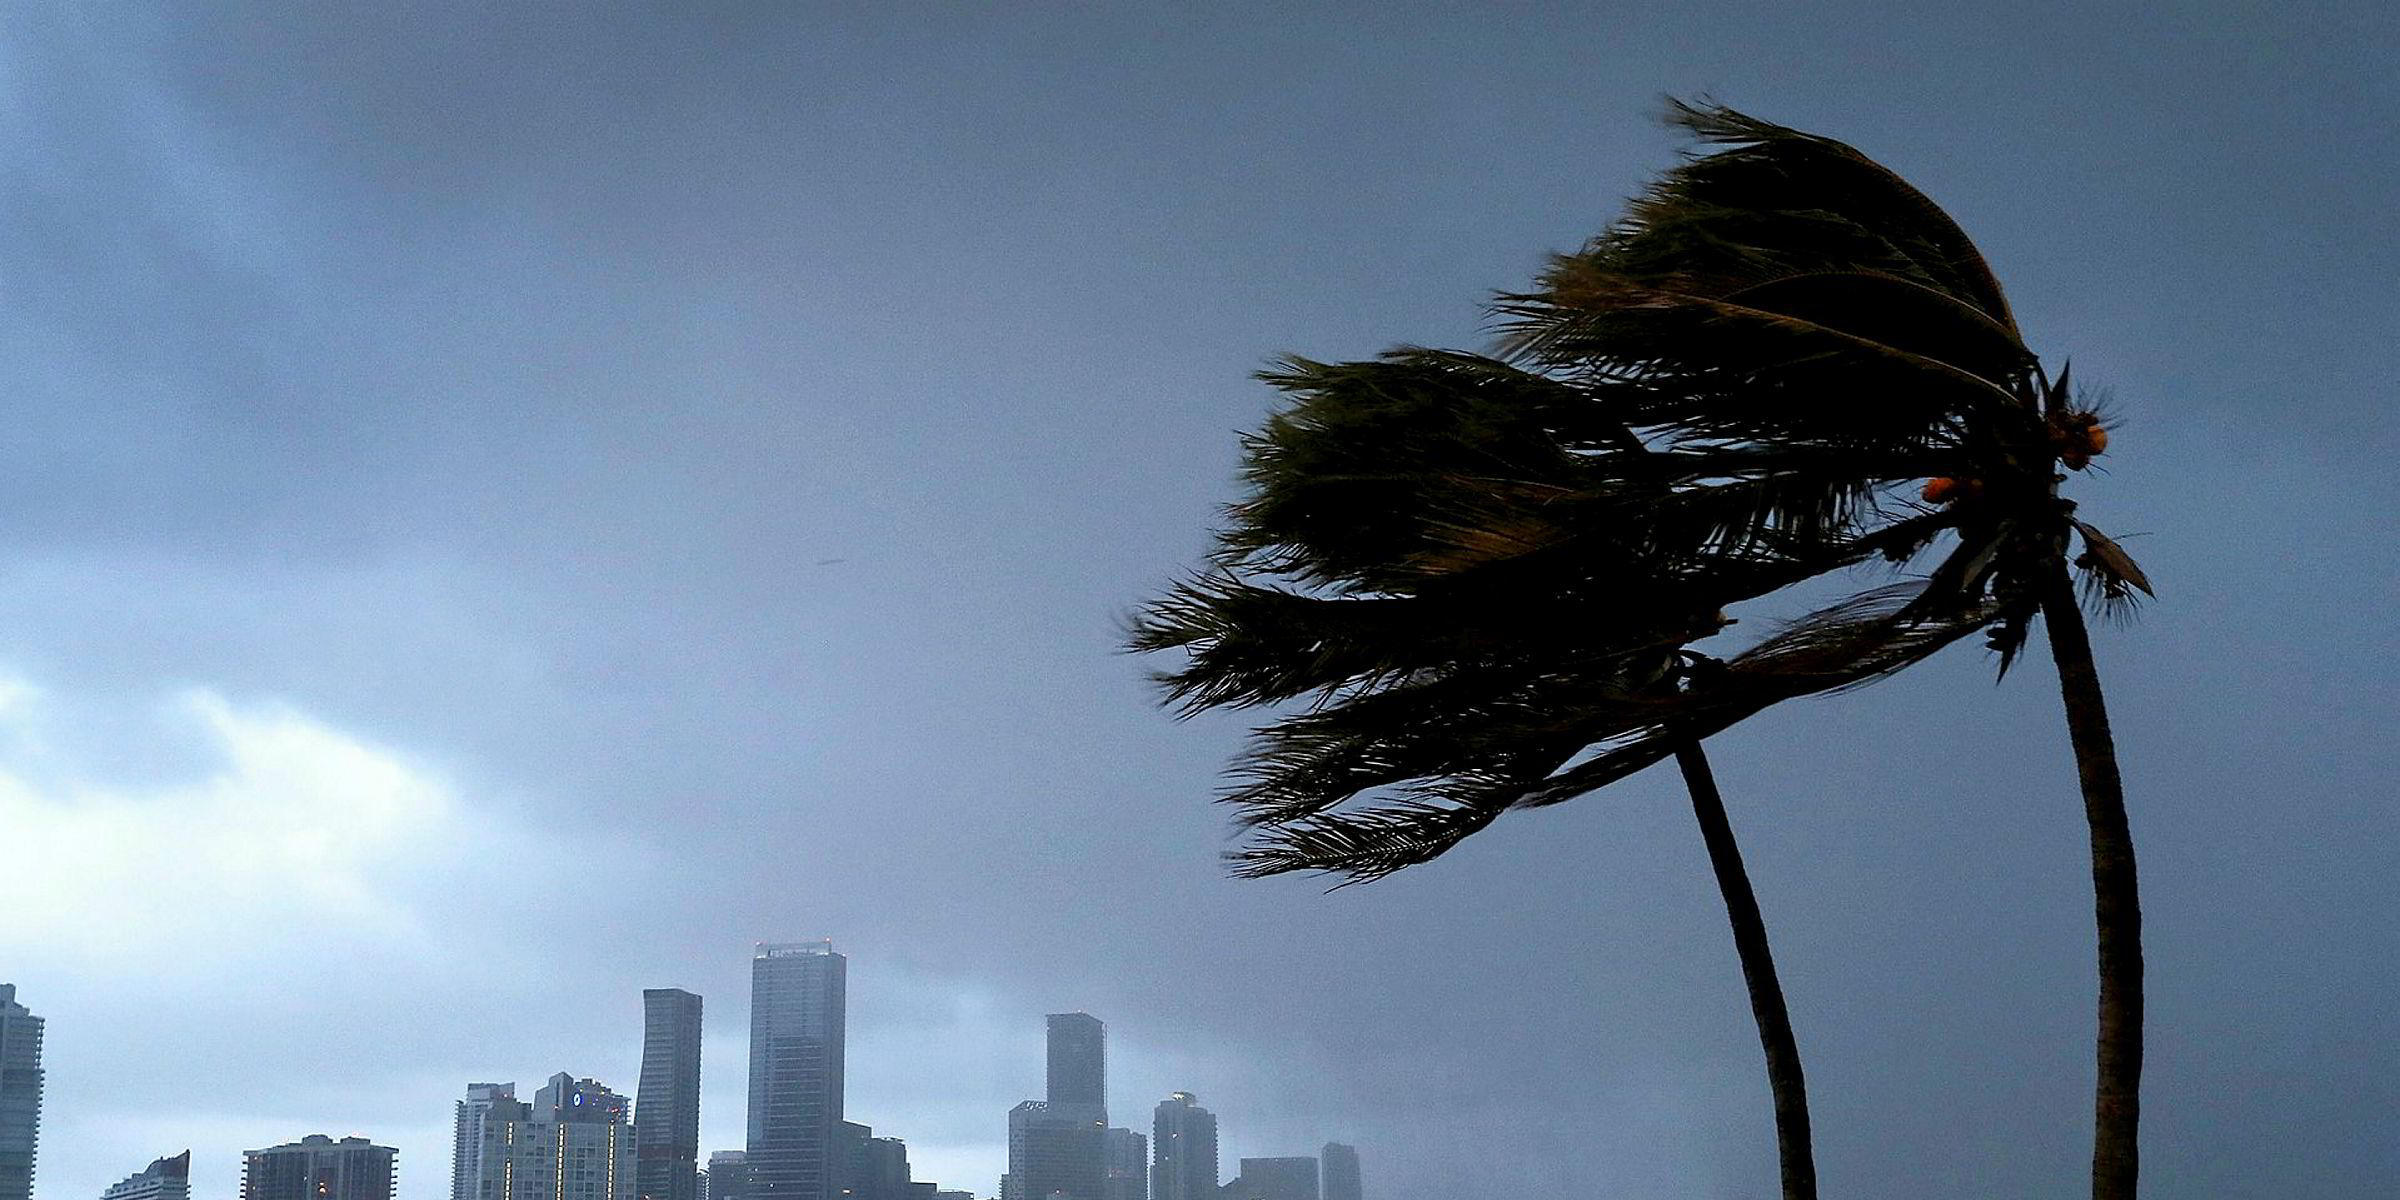 Calm 'after the storm' as P&I clubs win reinsurance rate